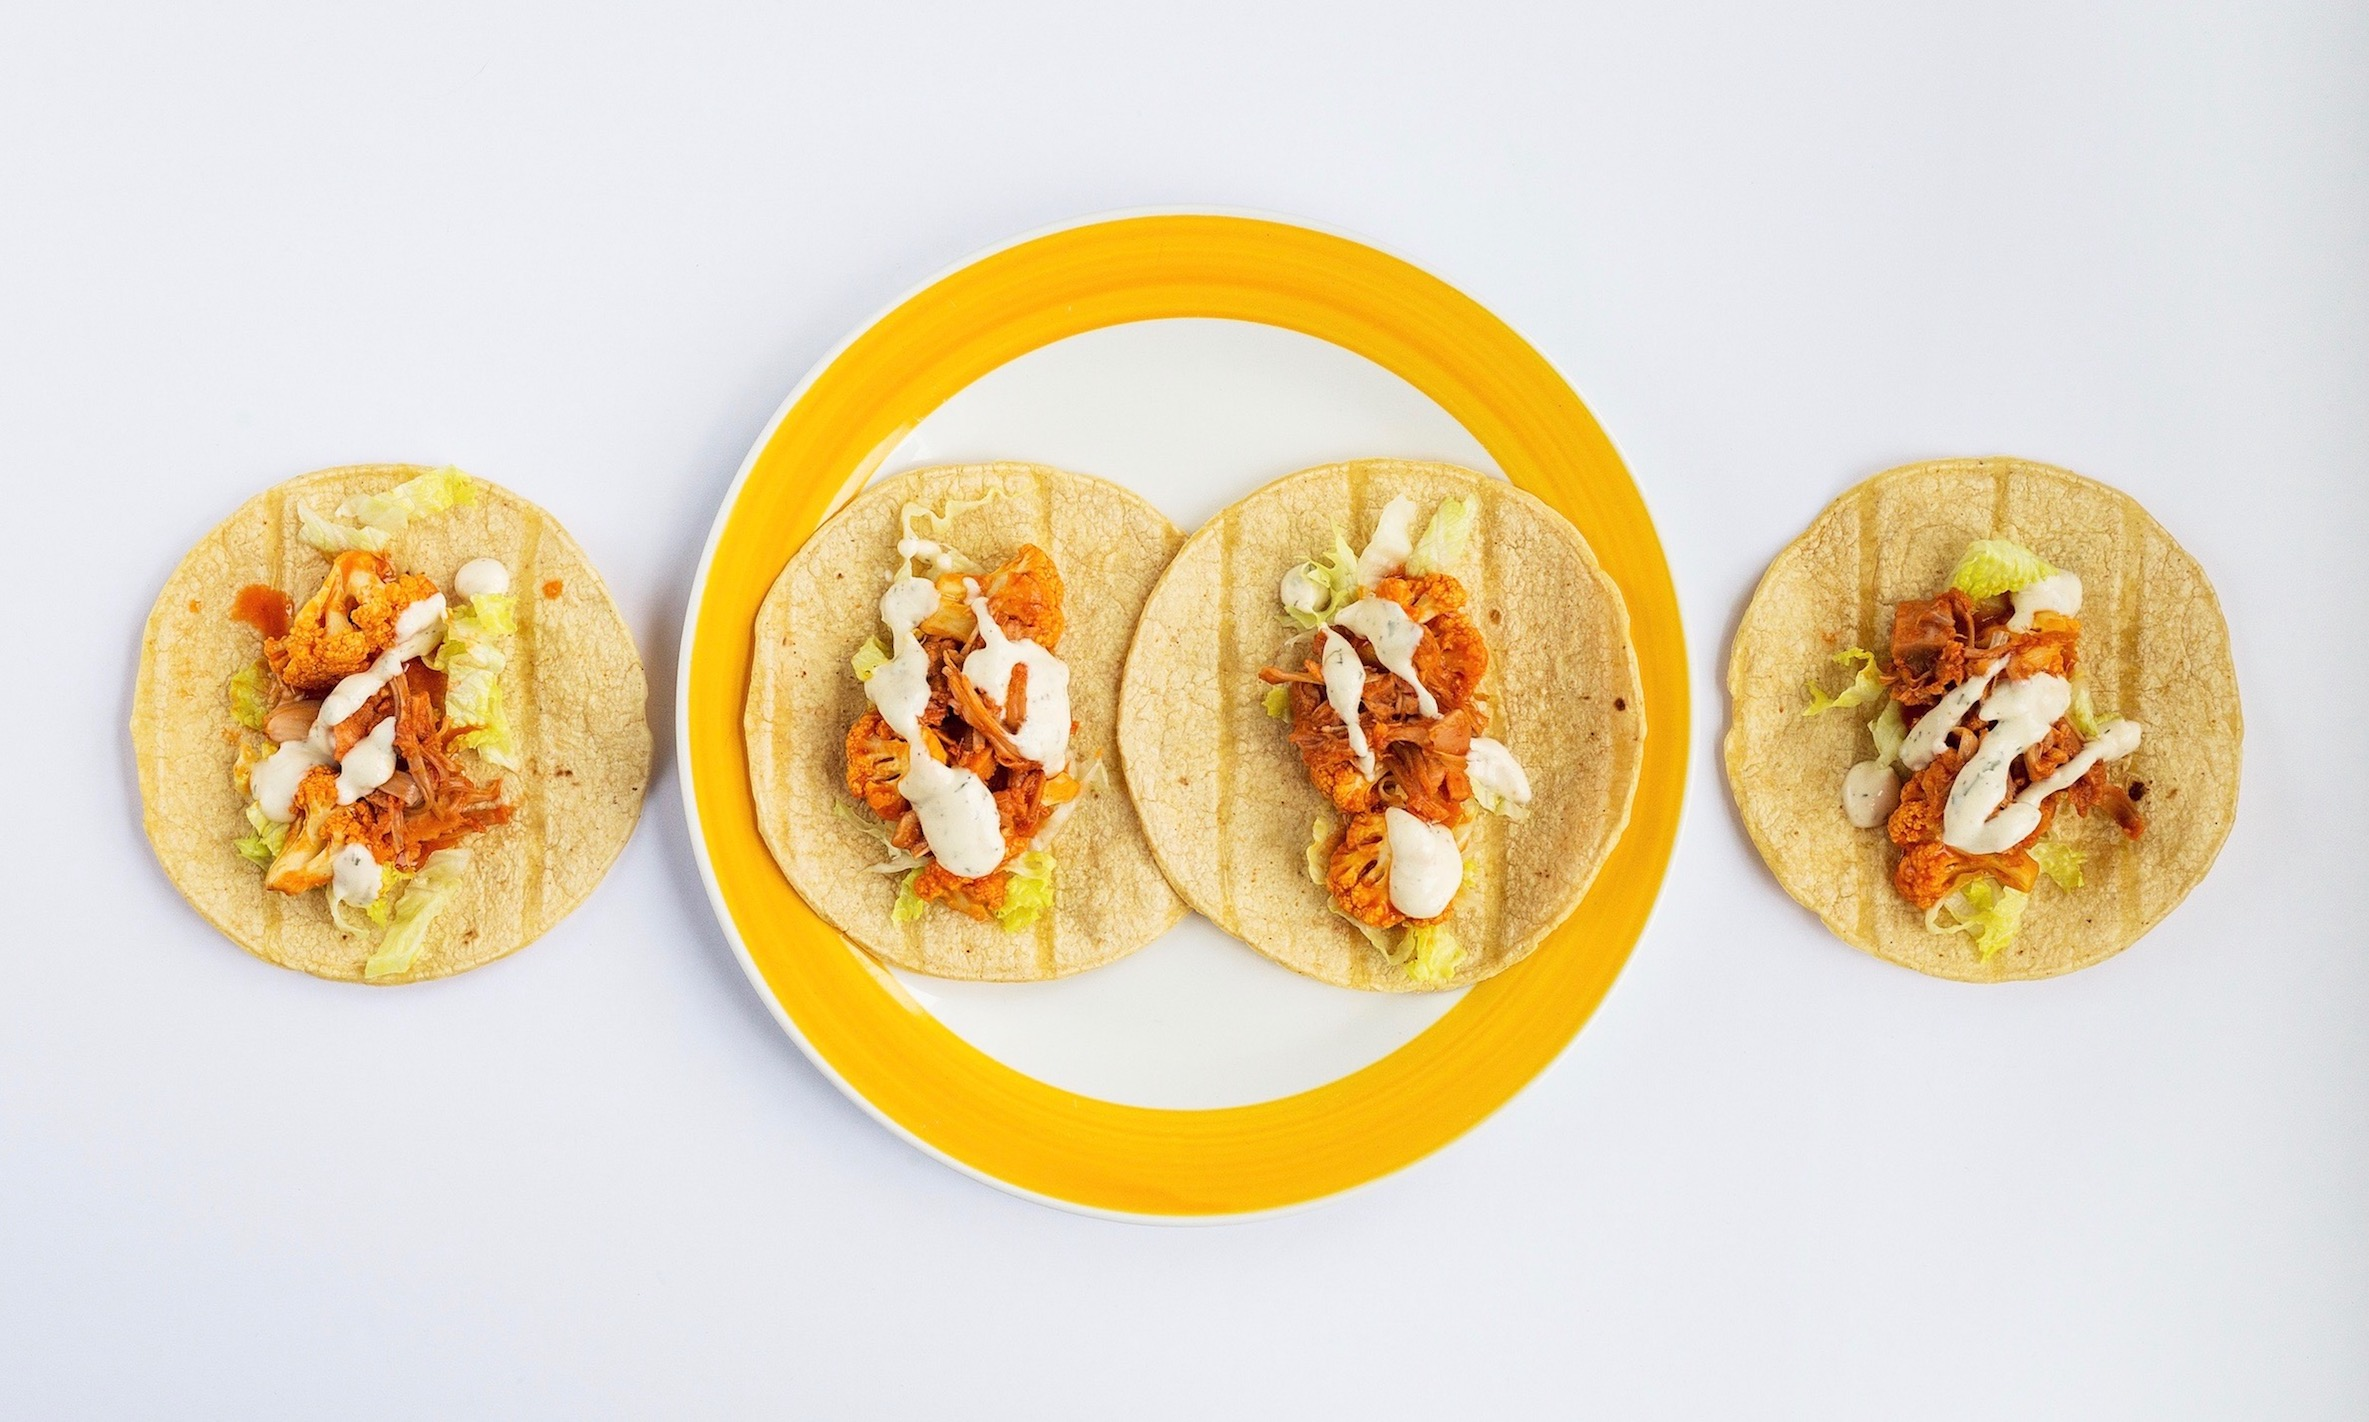 Sriracha Buffalo Cauliflower and Jackfruit Tacos